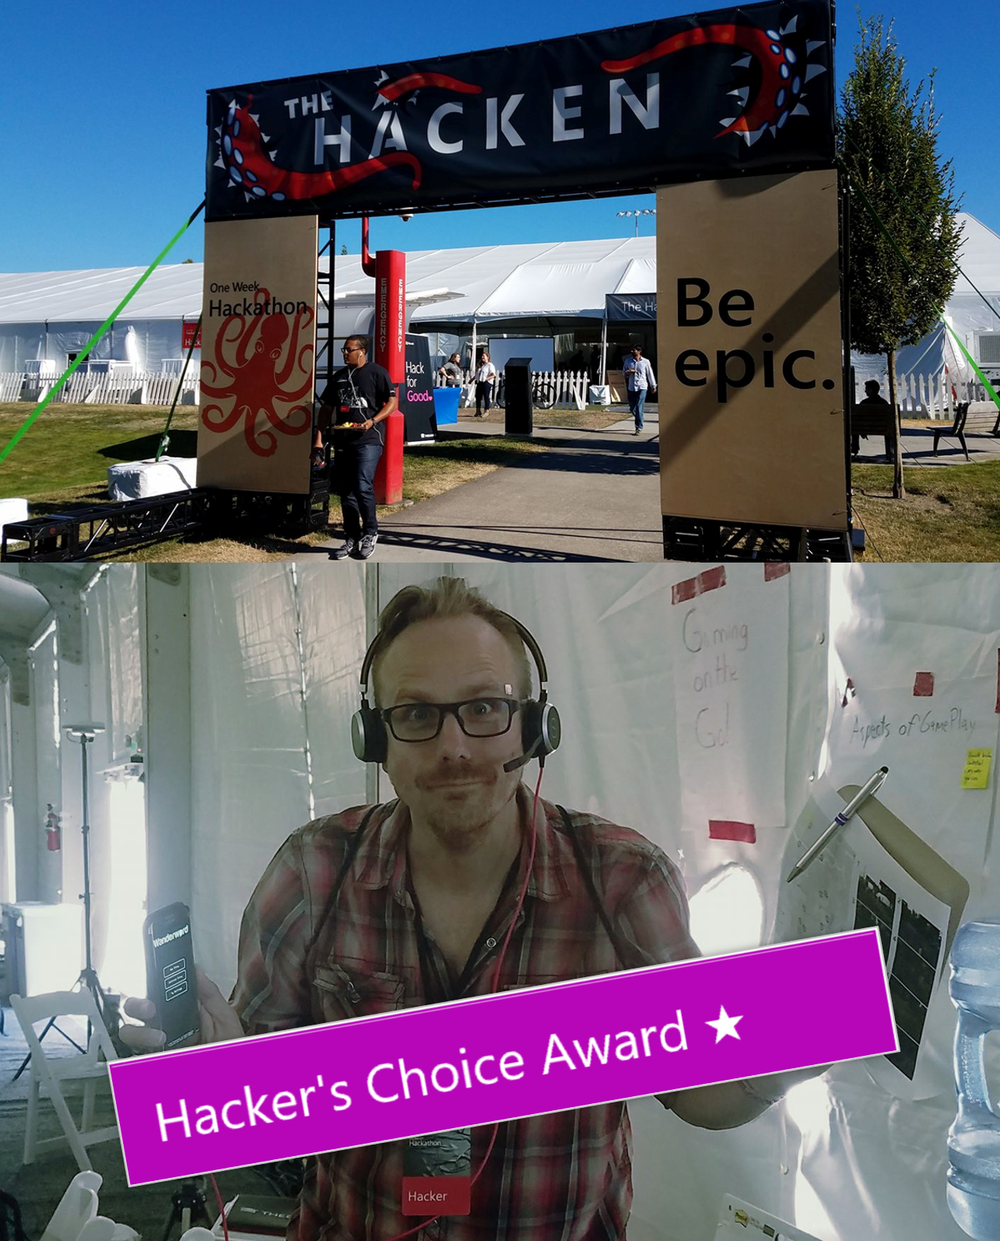 Inclusive Gaming @ Hackathon - July 25th 2017I'm very proud to represent and work for Microsoft. Not only in my 'heads-down' daily work on the Xbox team, but even more so as an employee of the company all-up. I get to work with incredibly smart people who believe and thrive in empowering people around the world to achieve more. It was a privilege and a pleasure to lend out and contribute with Wanderword during the company's week-long Hackathon event last week. Together with esteemed colleagues from various divisions, we experimented with geo-location based gameplay with Inclusive Gaming as our primary goal. We achieved our goals and turned Microsoft east campus into a game world that could be discovered through speech and location based interaction.